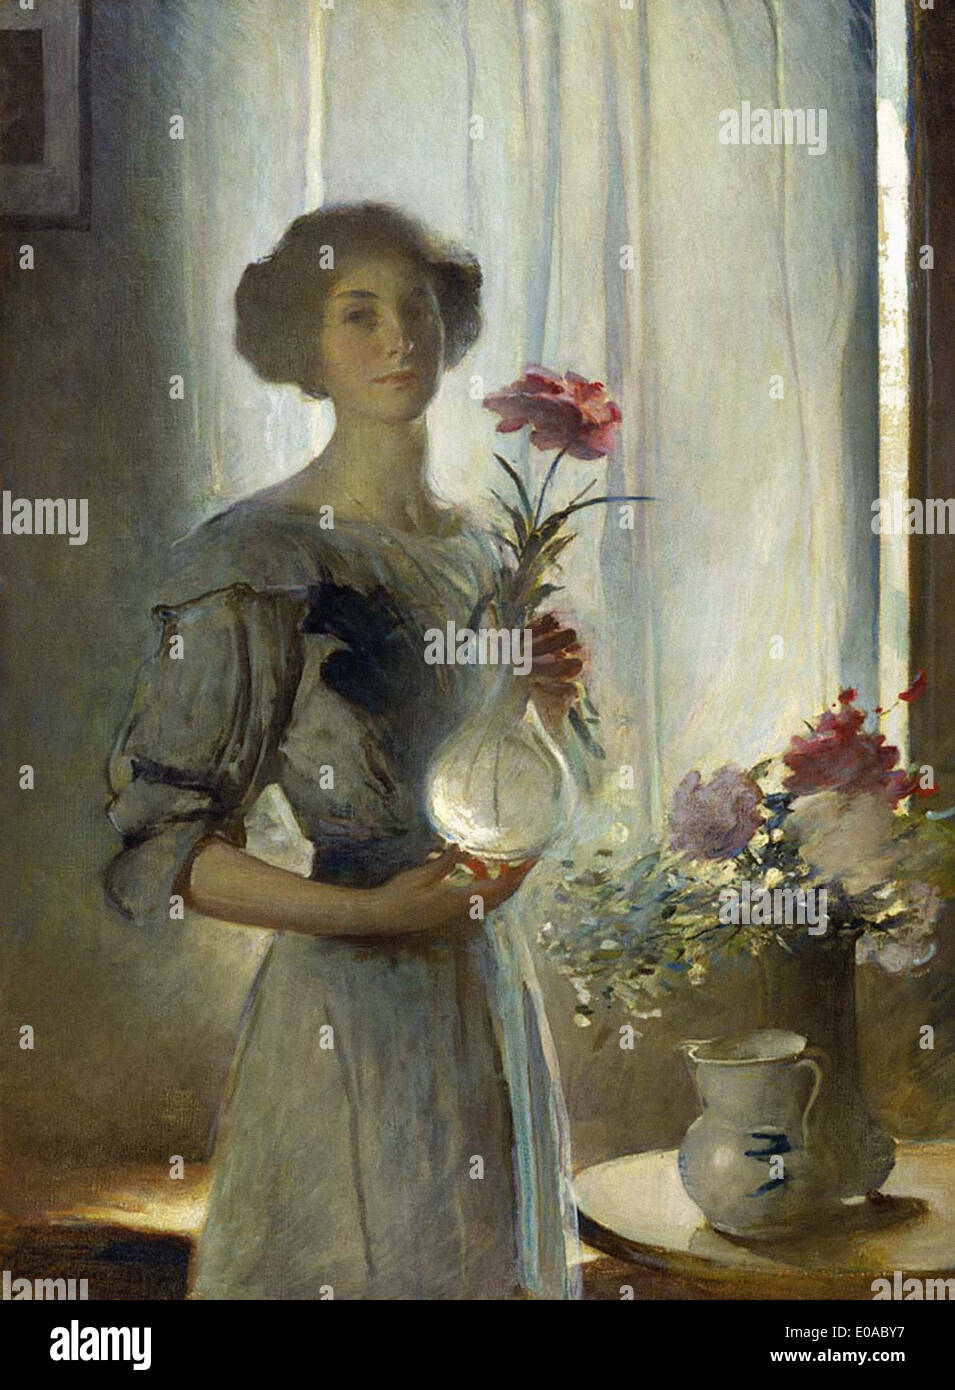 John White Alexander June - Stock Image